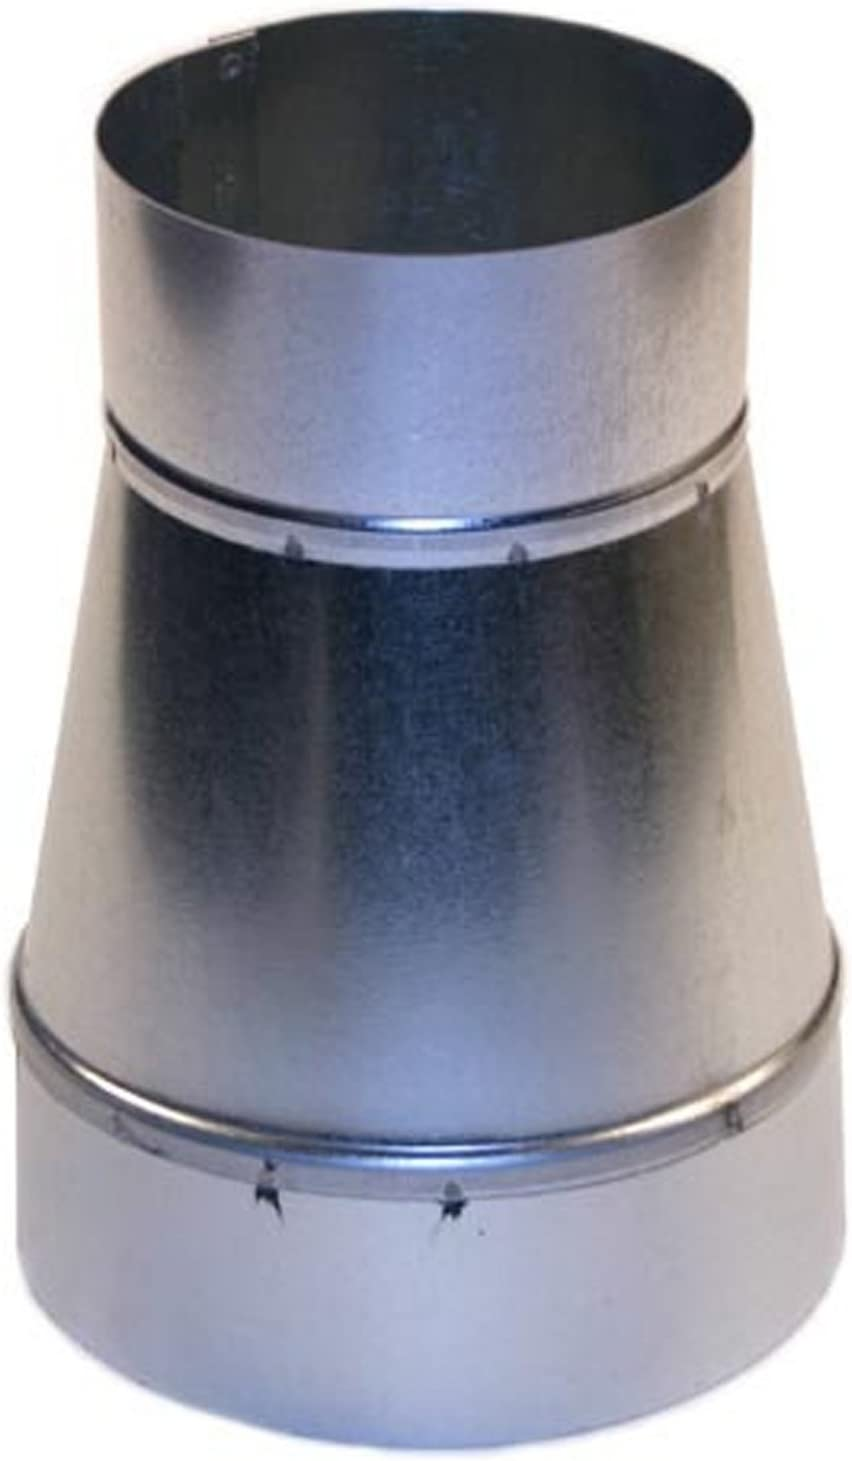 Other purpose. Single Wall Metal Duct Reducer Increaser for Ducting